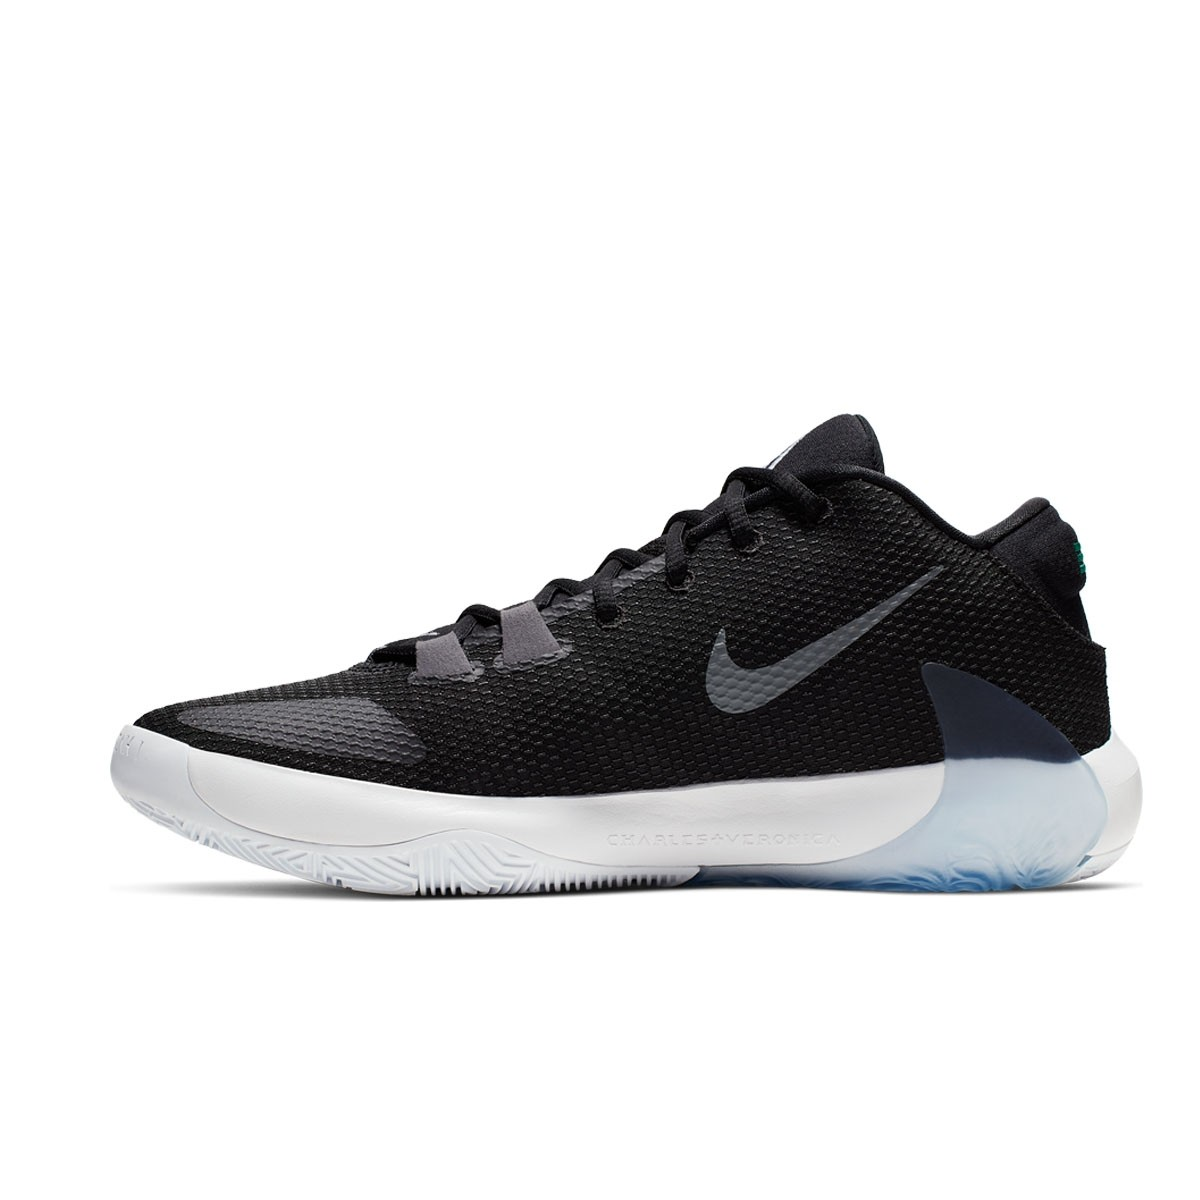 Nike Zoom Freak 1 'Black & White' BQ5422-001